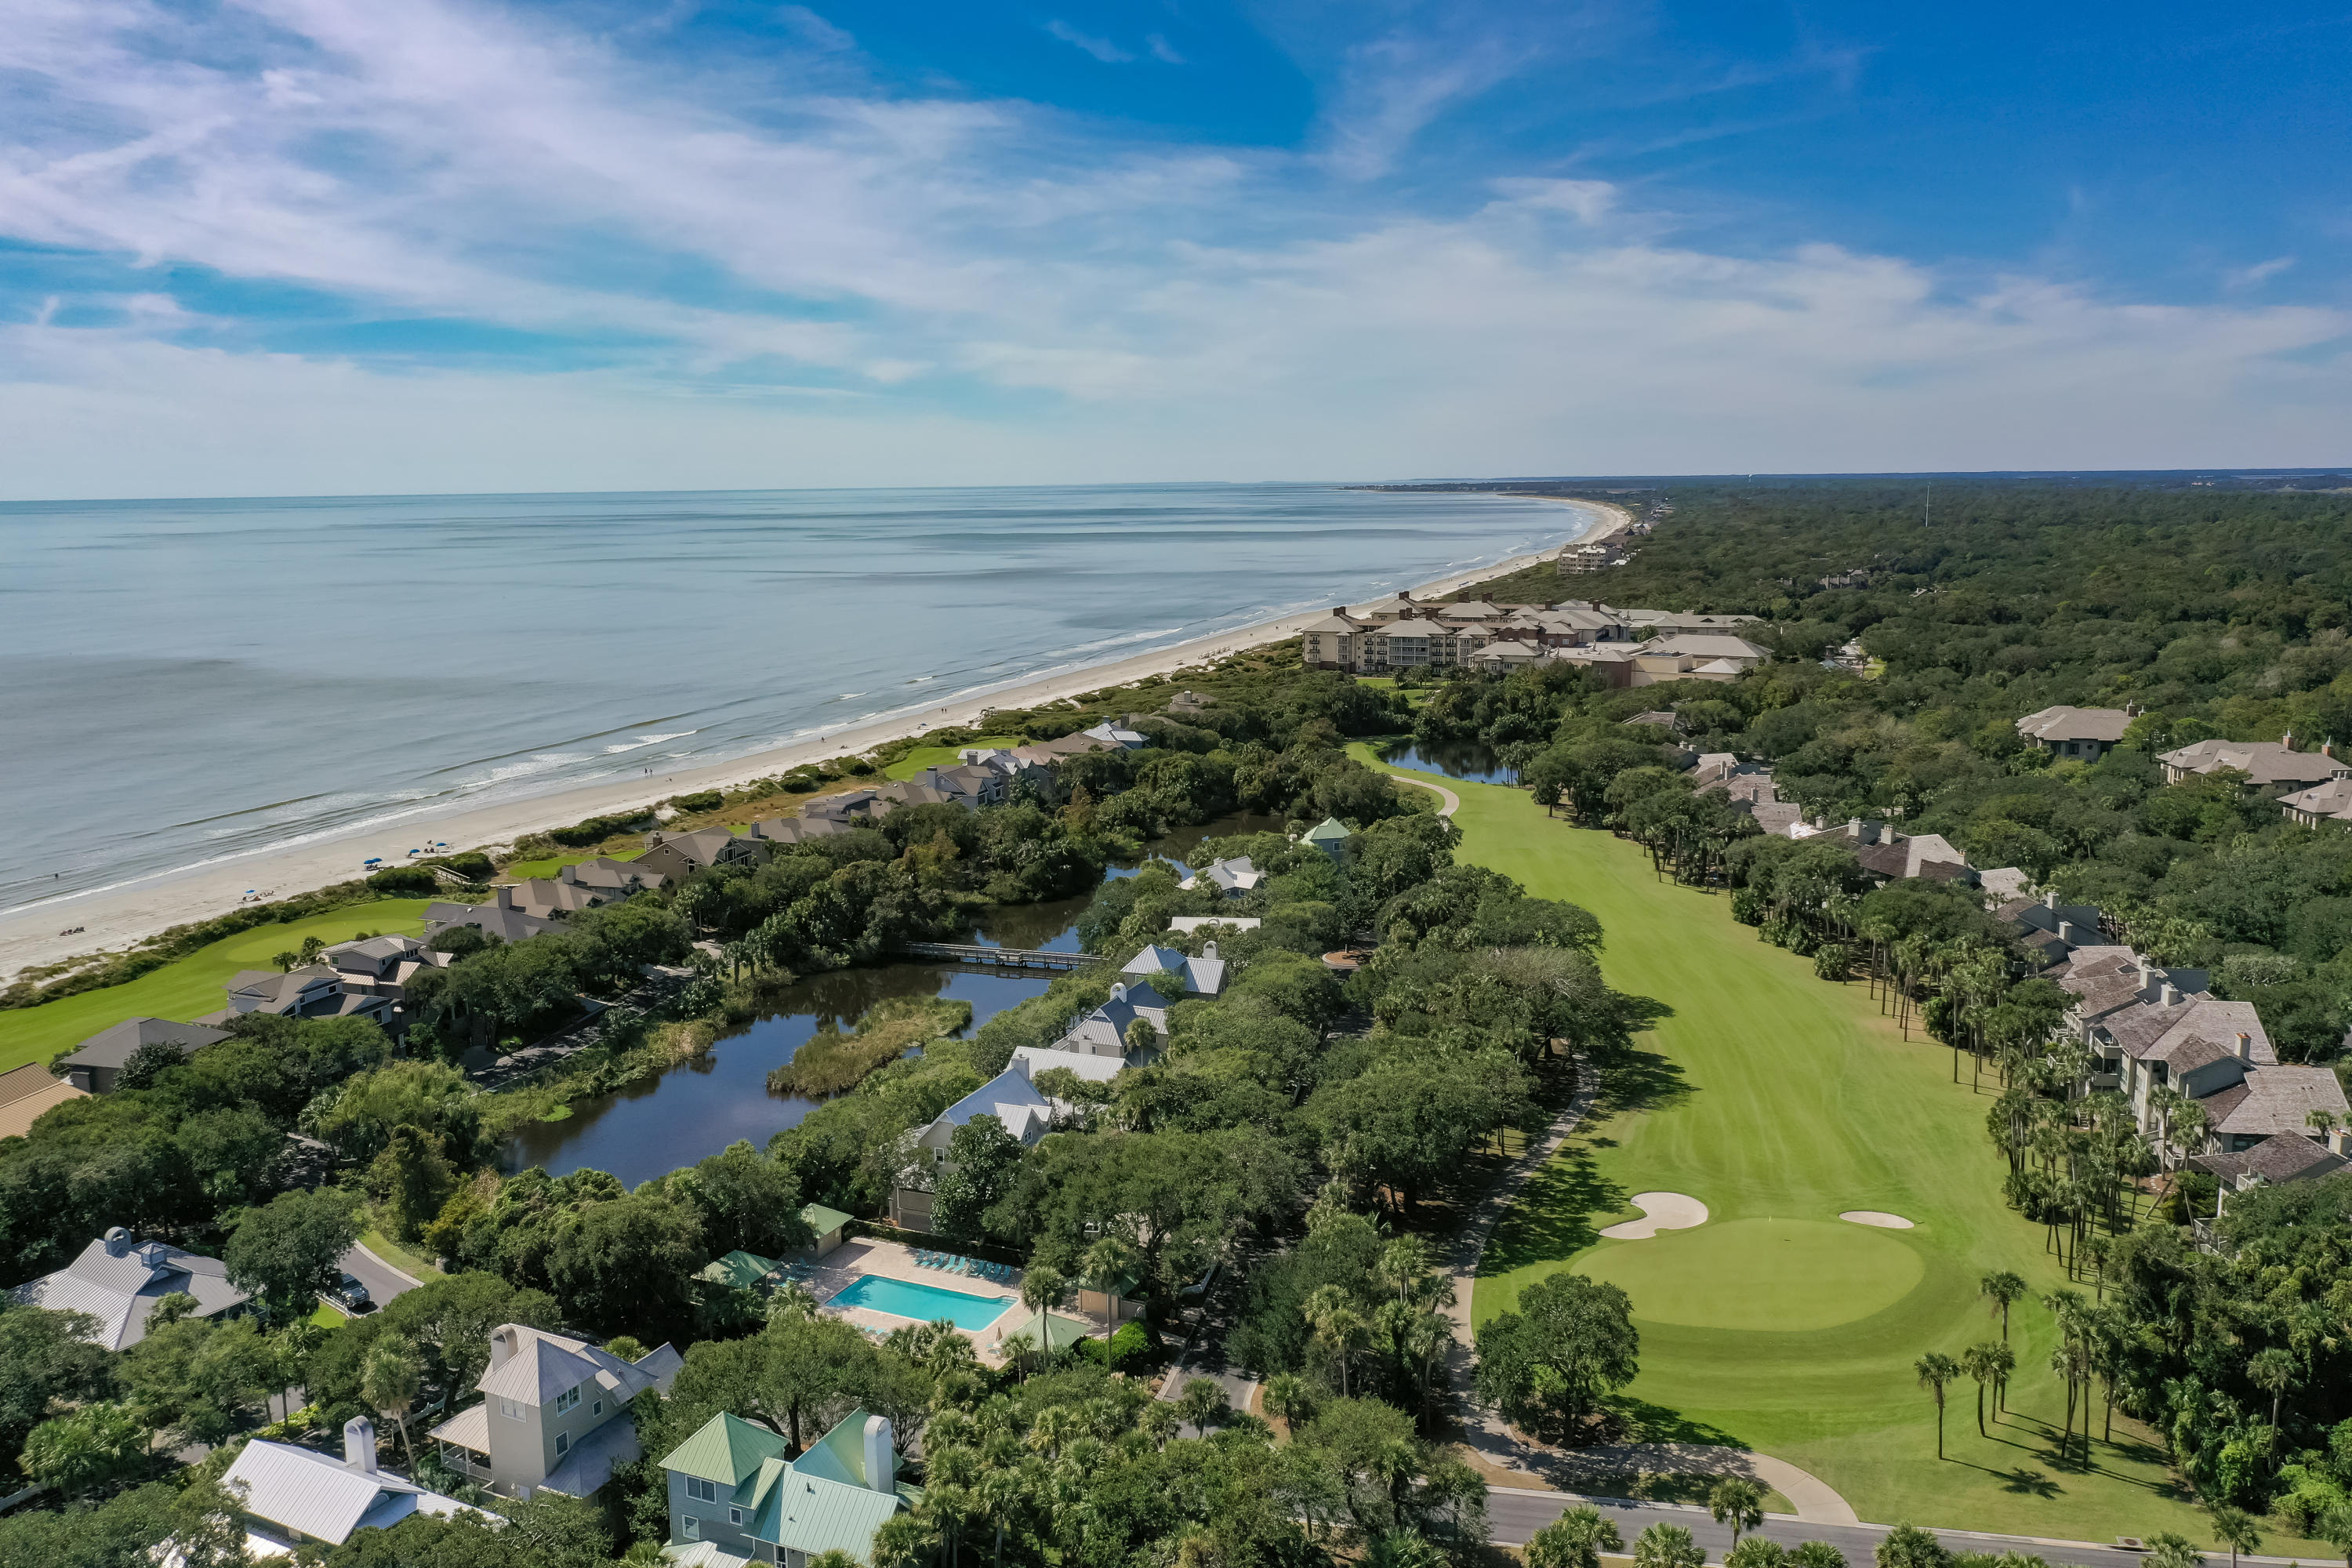 Kiawah Island Homes For Sale - 24 Atlantic Beach, Kiawah Island, SC - 25